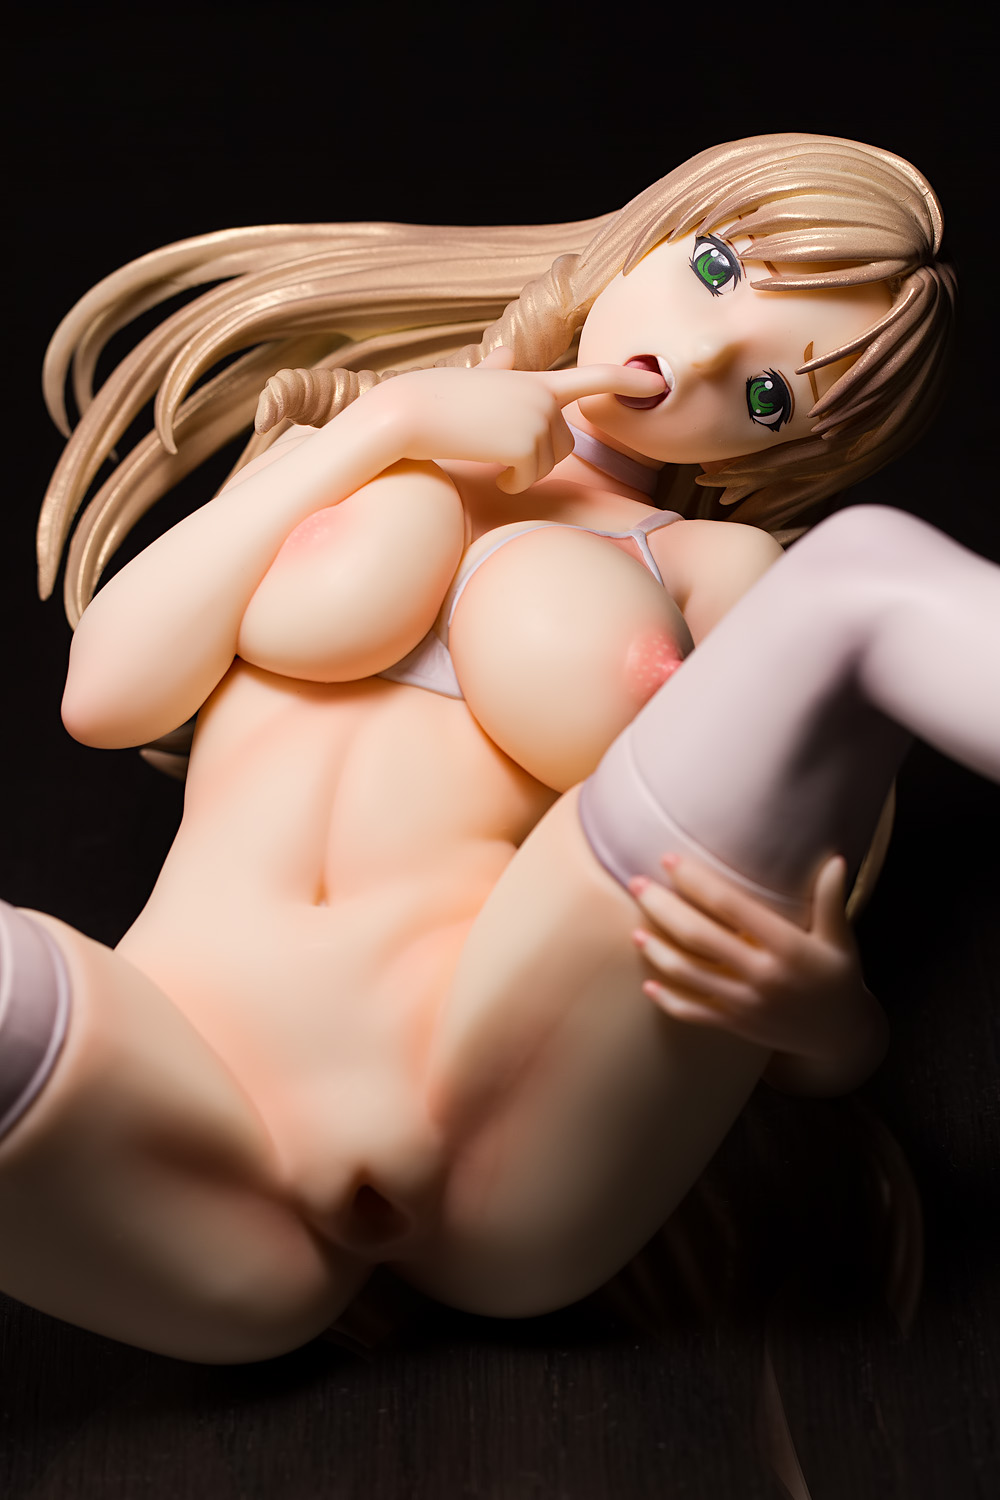 Erotic xxx figurines porn comic